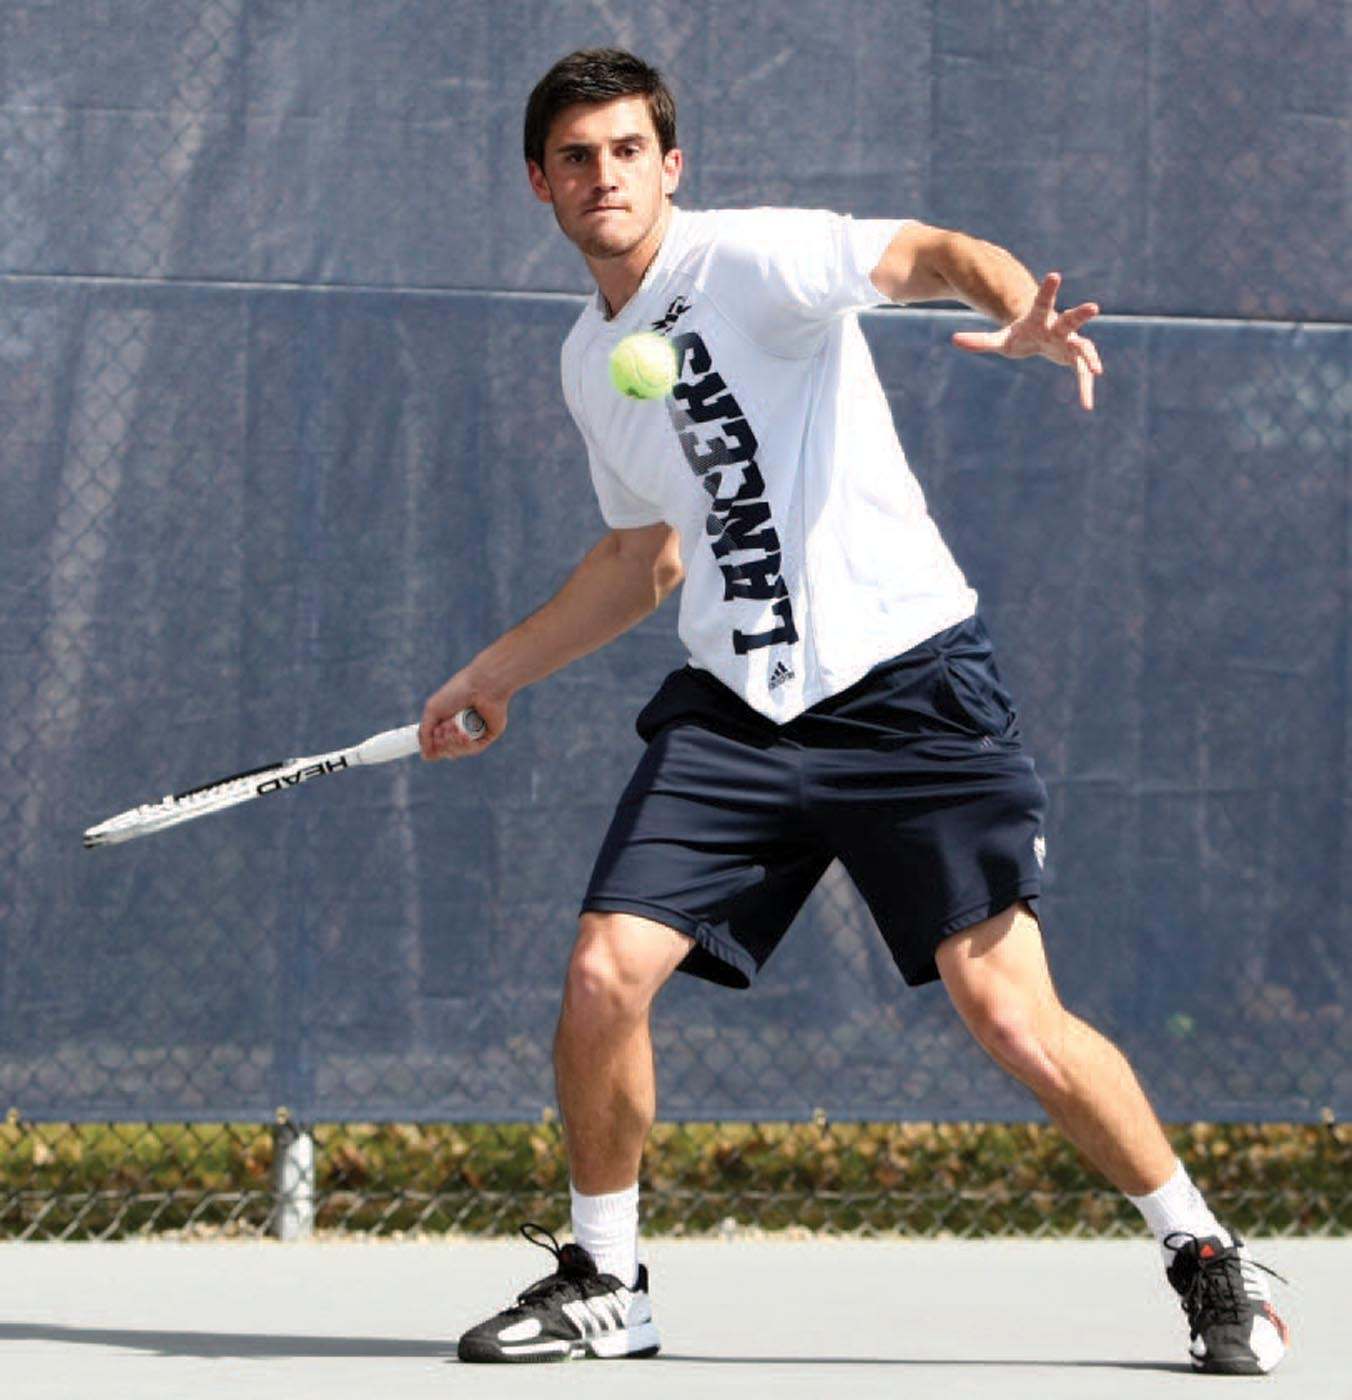 Georgi Khmiadashvili '13 played out of the No. 1 singles position on the men's tennis team.